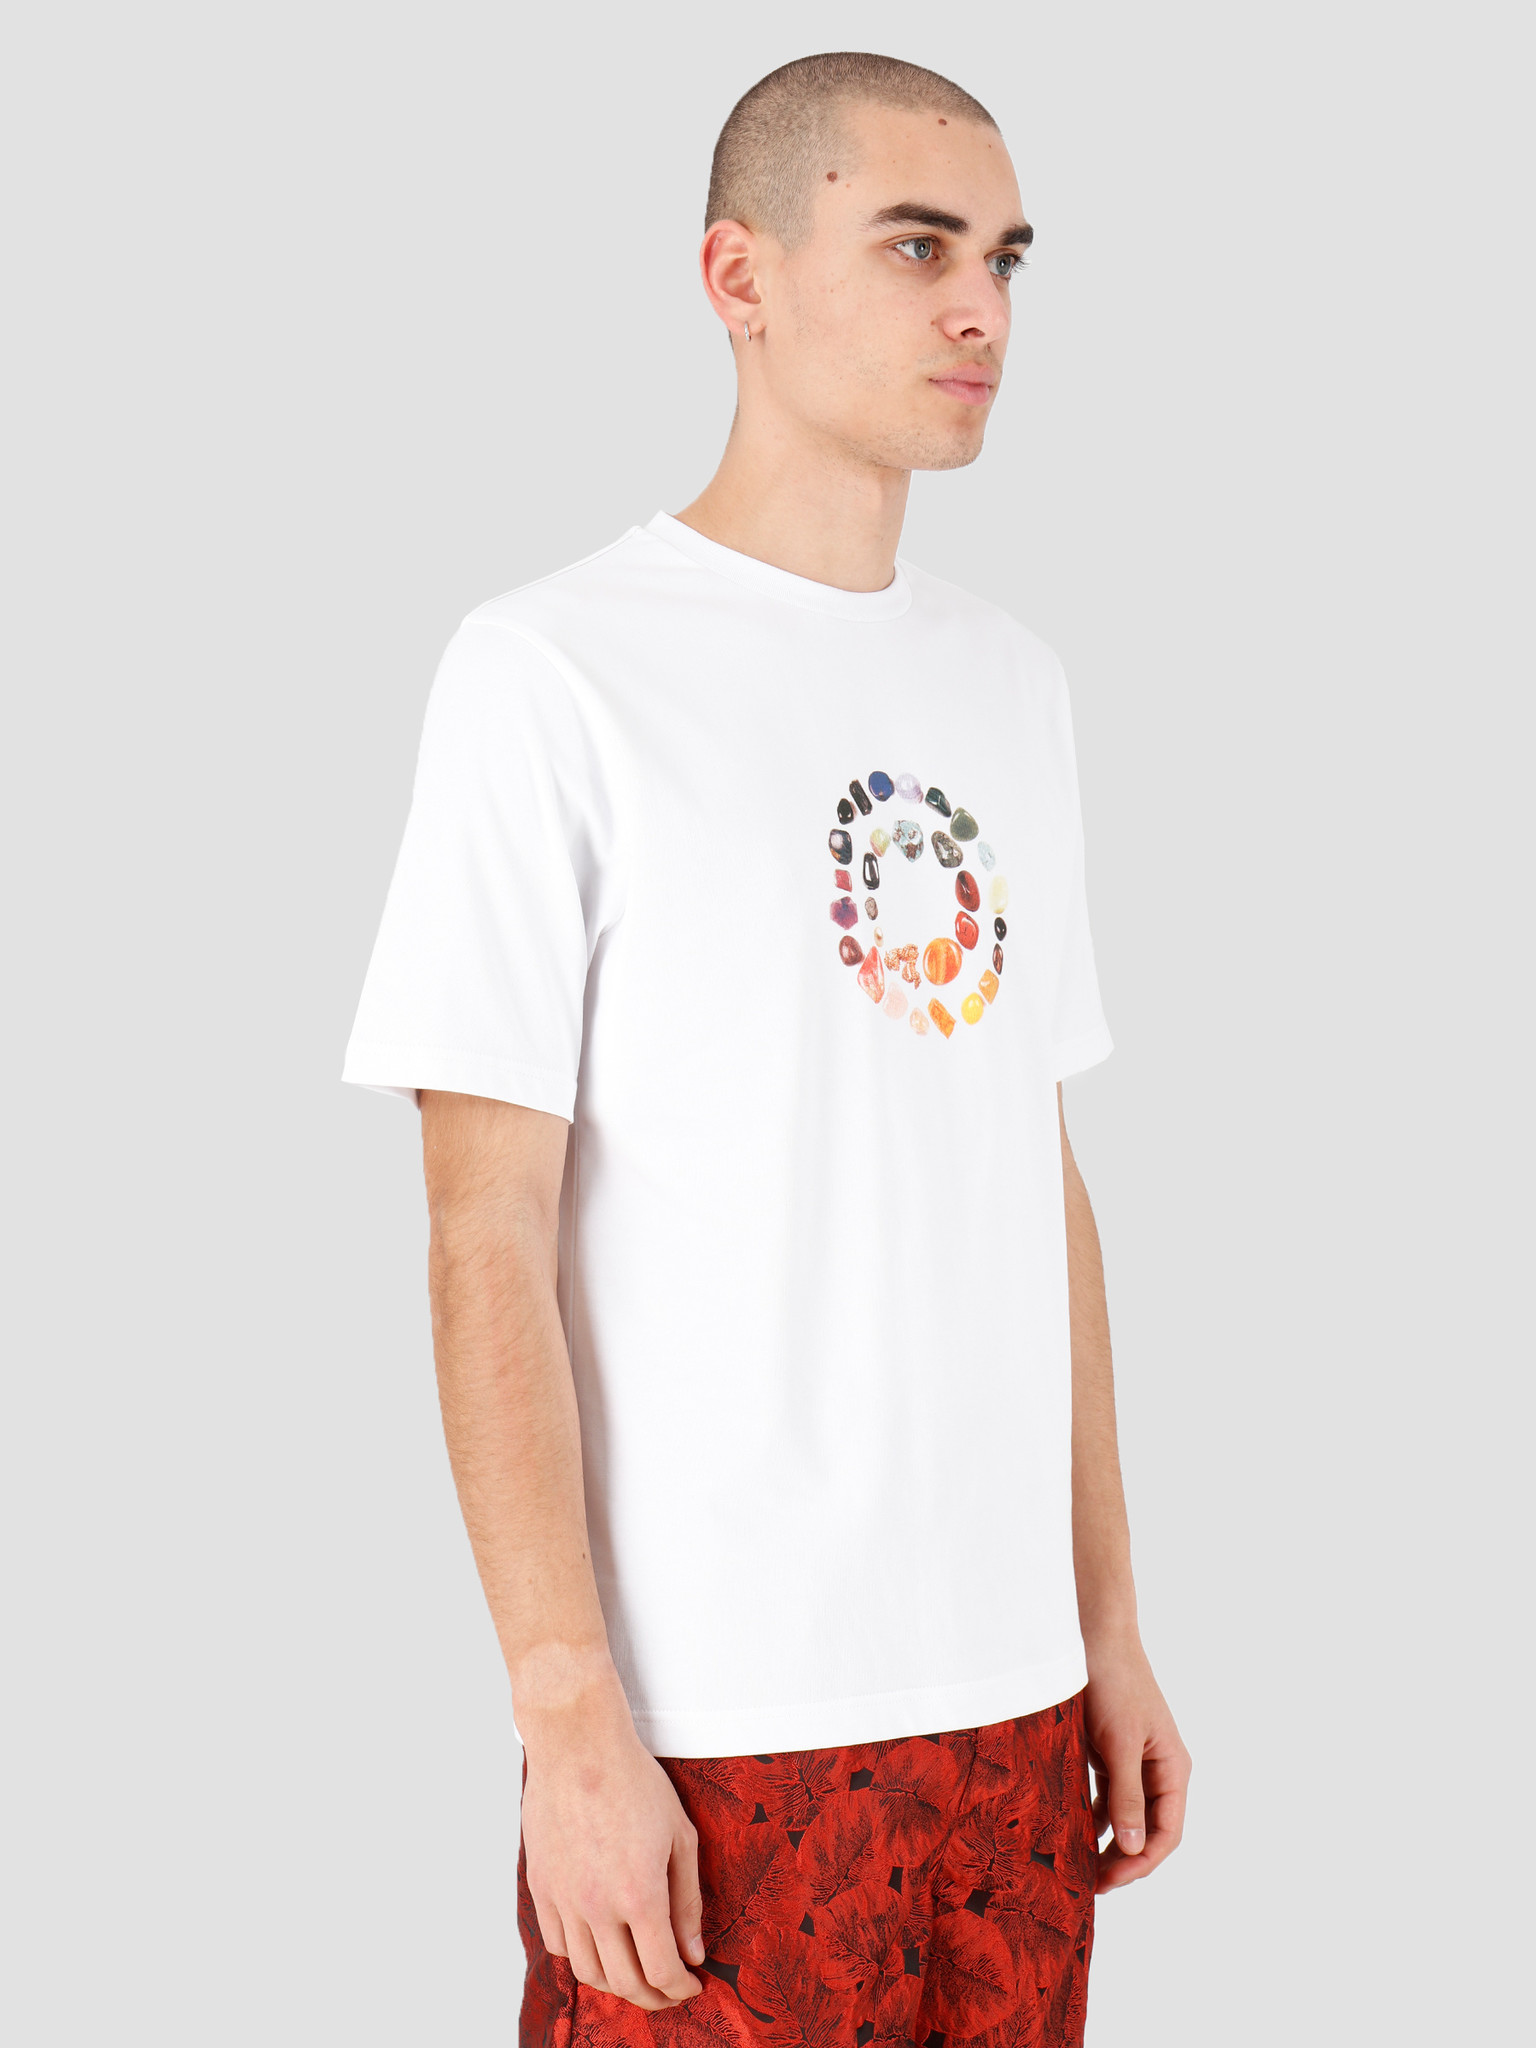 Daily Paper Daily Paper Henwhi T-shirt White 20S1TS13-01